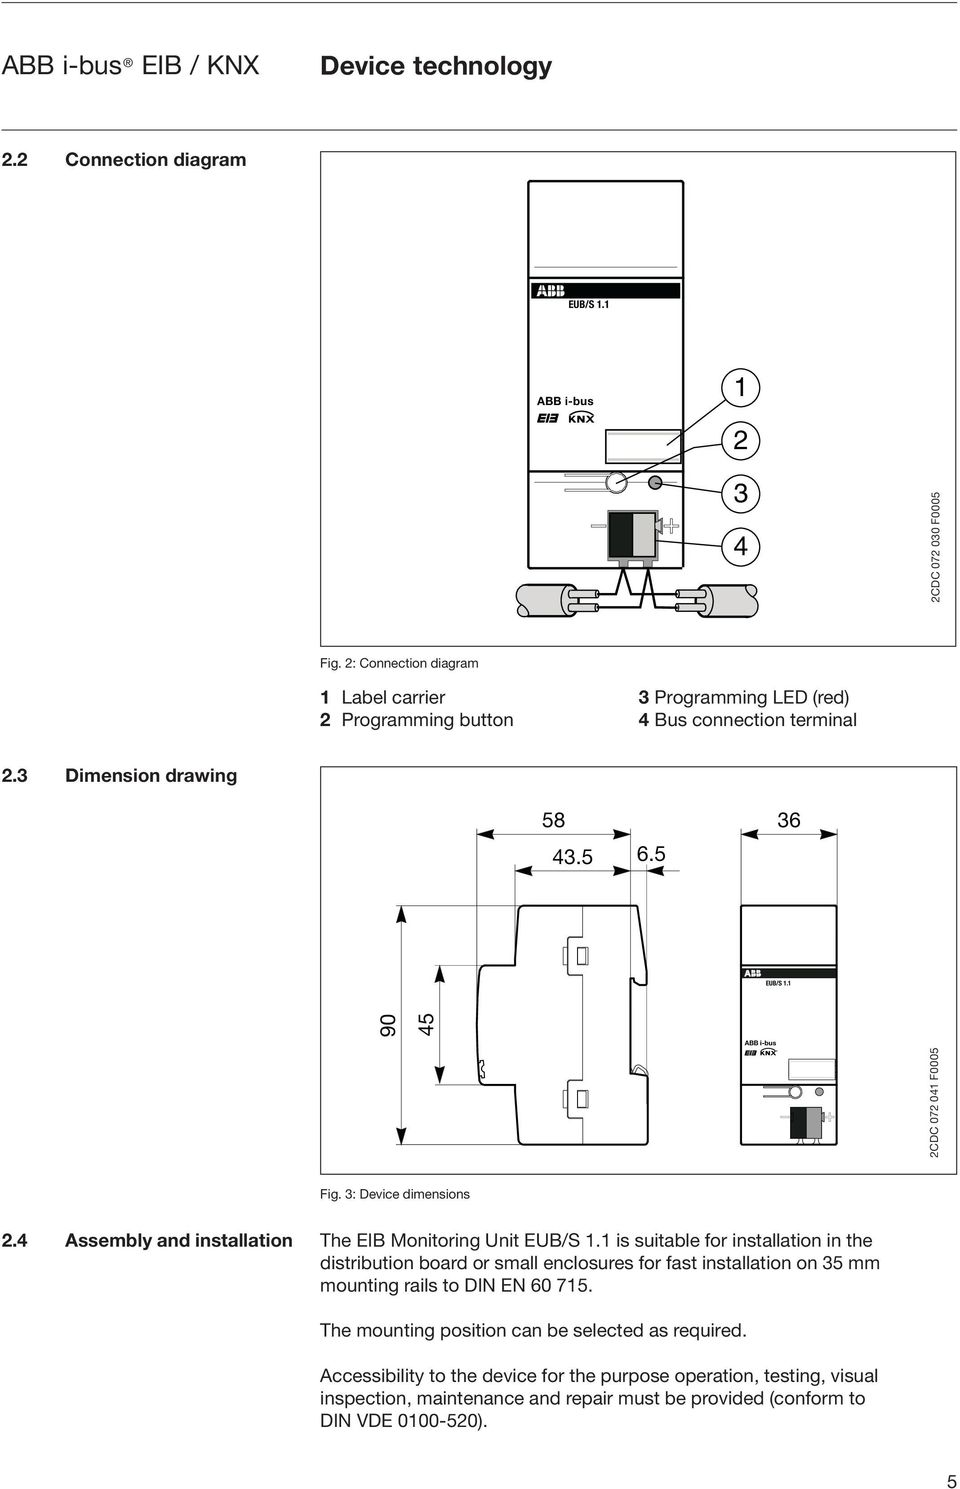 1 2CDC 072 041 F0005 2CDC 072 030 F0005 Fig. 3: Device dimensions 2.4 Assembly and installation The EIB Monitoring Unit EUB/S 1.